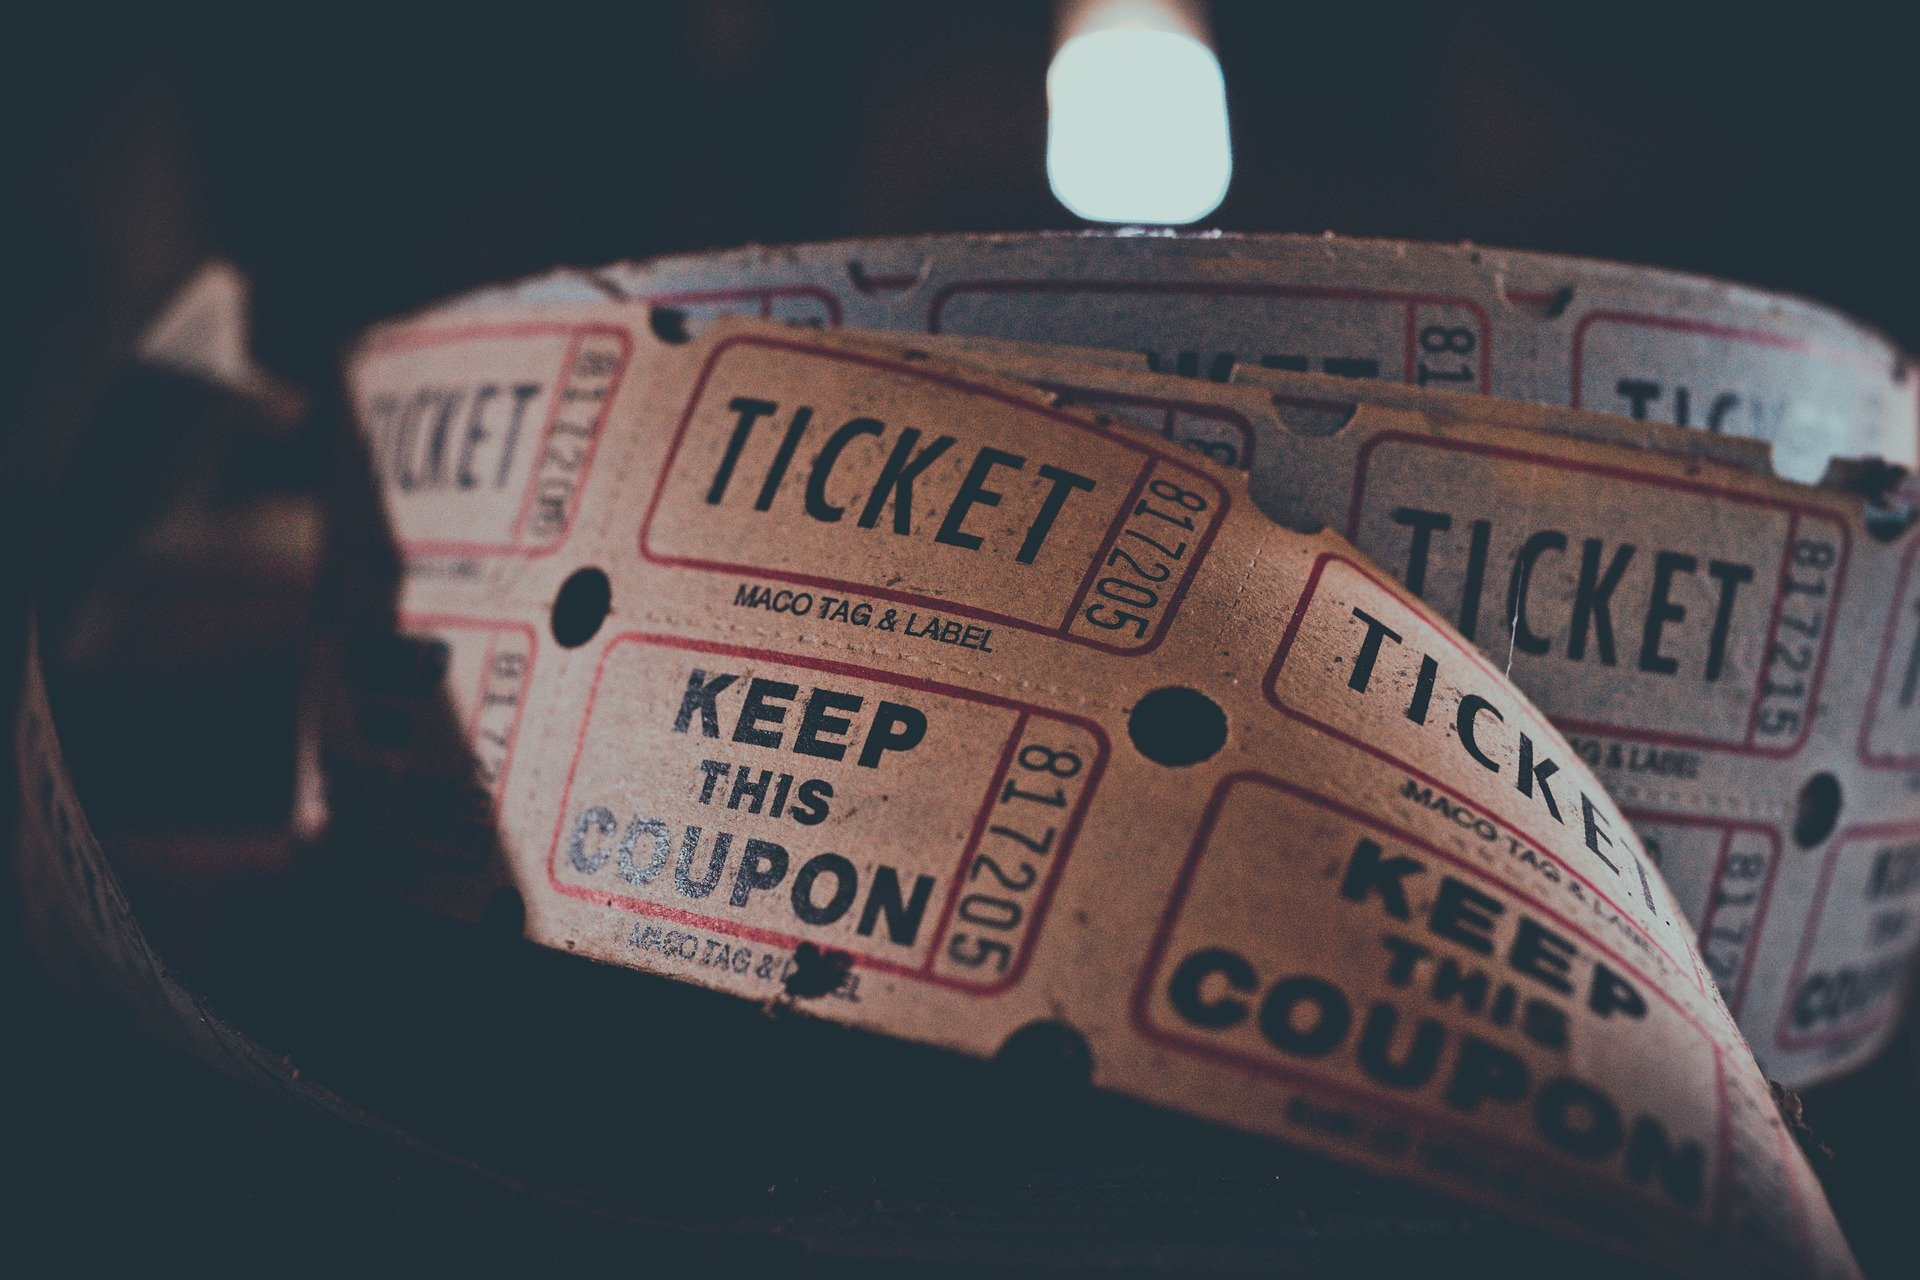 Ticket reel